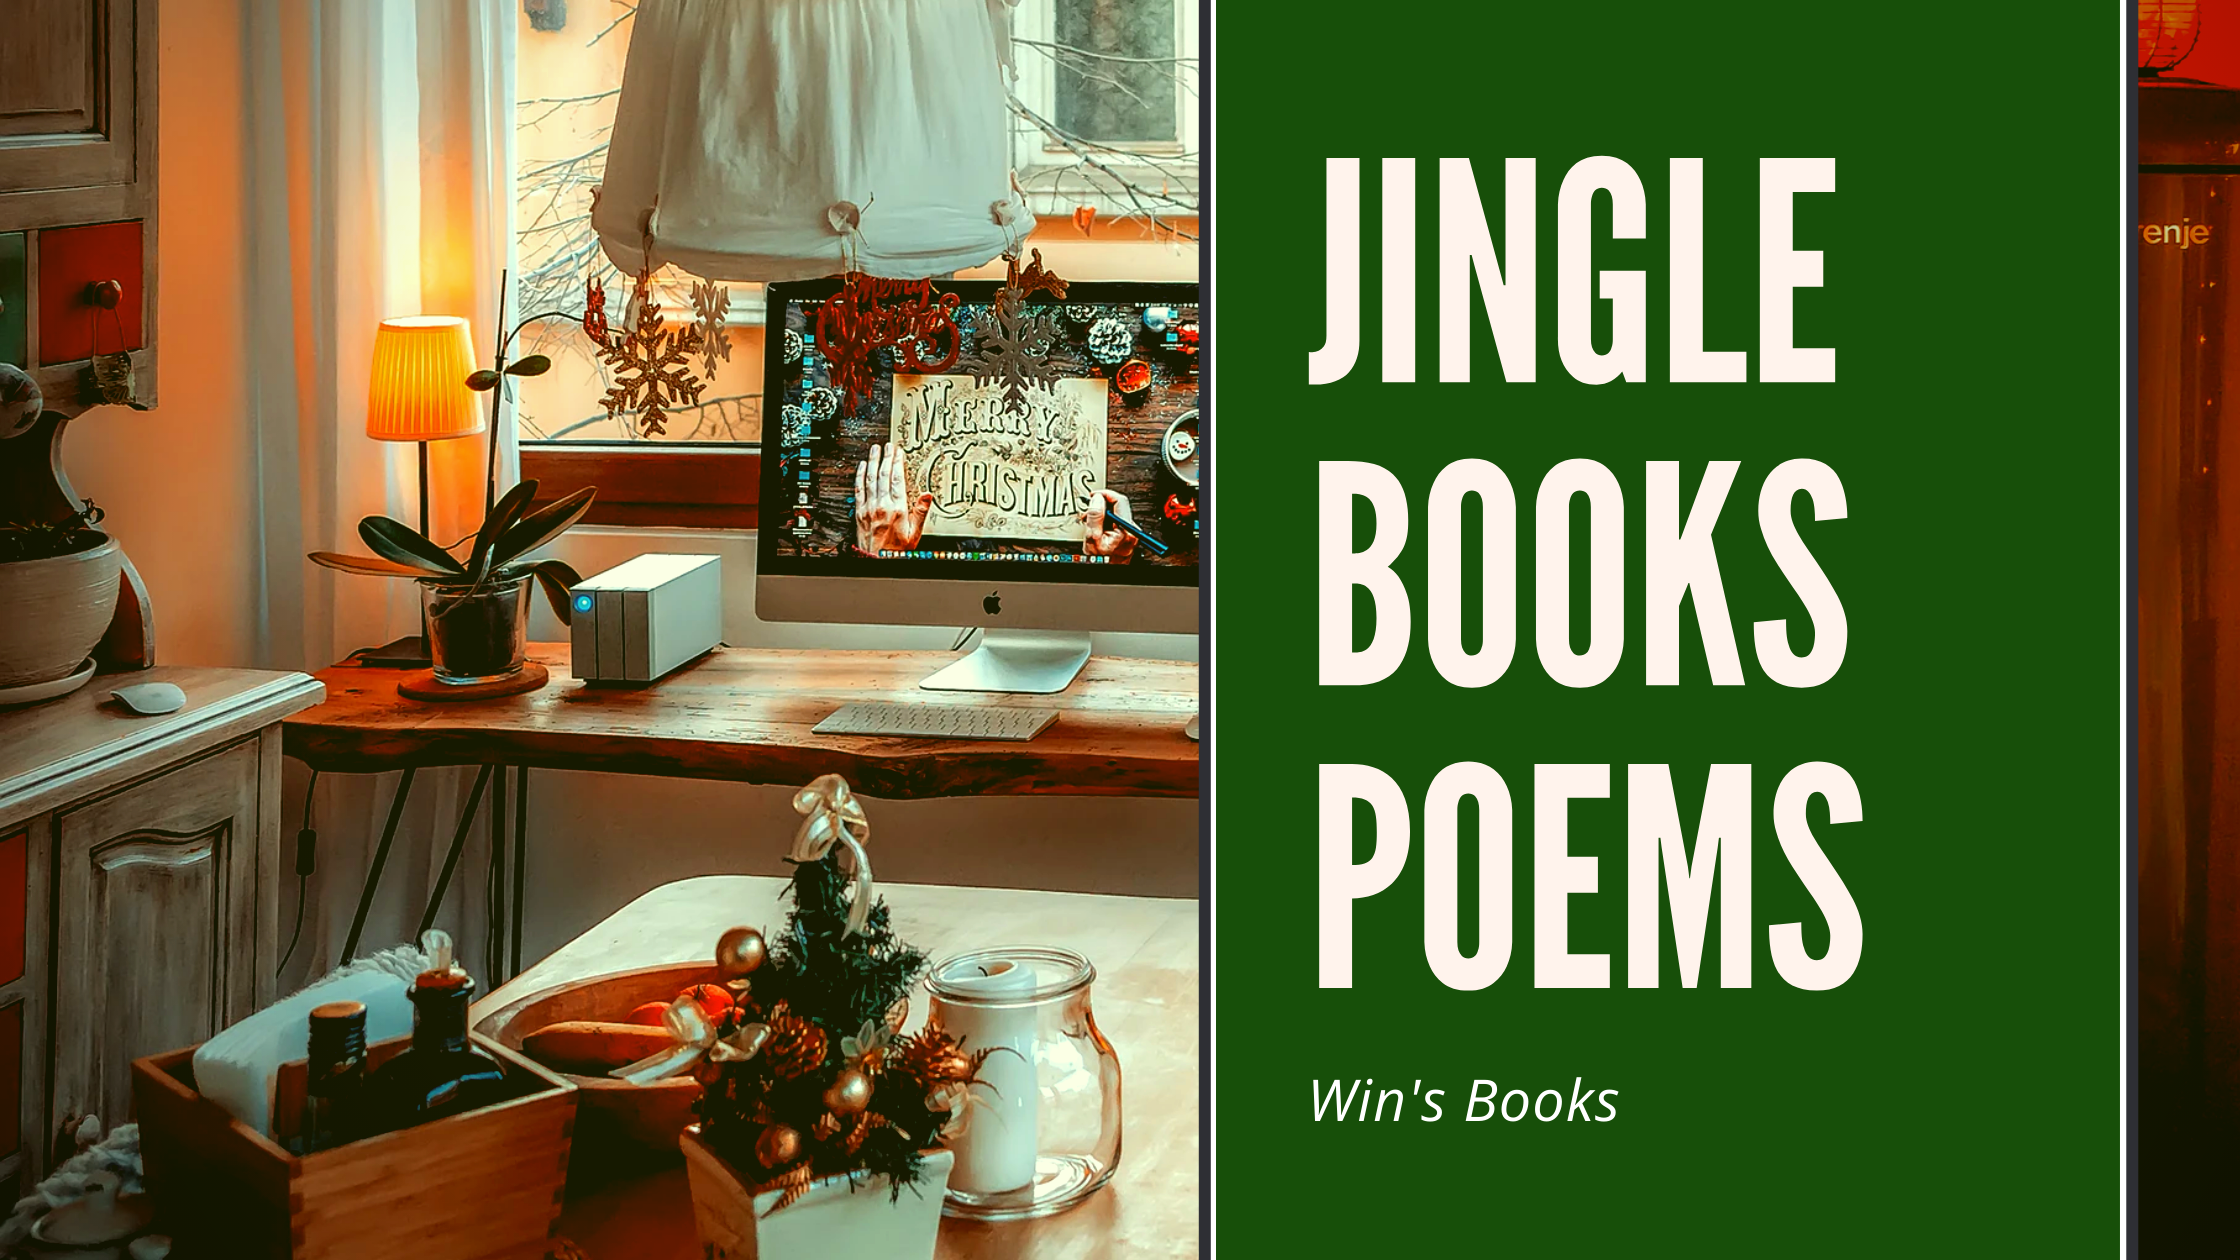 Jingle Books on Win's Books